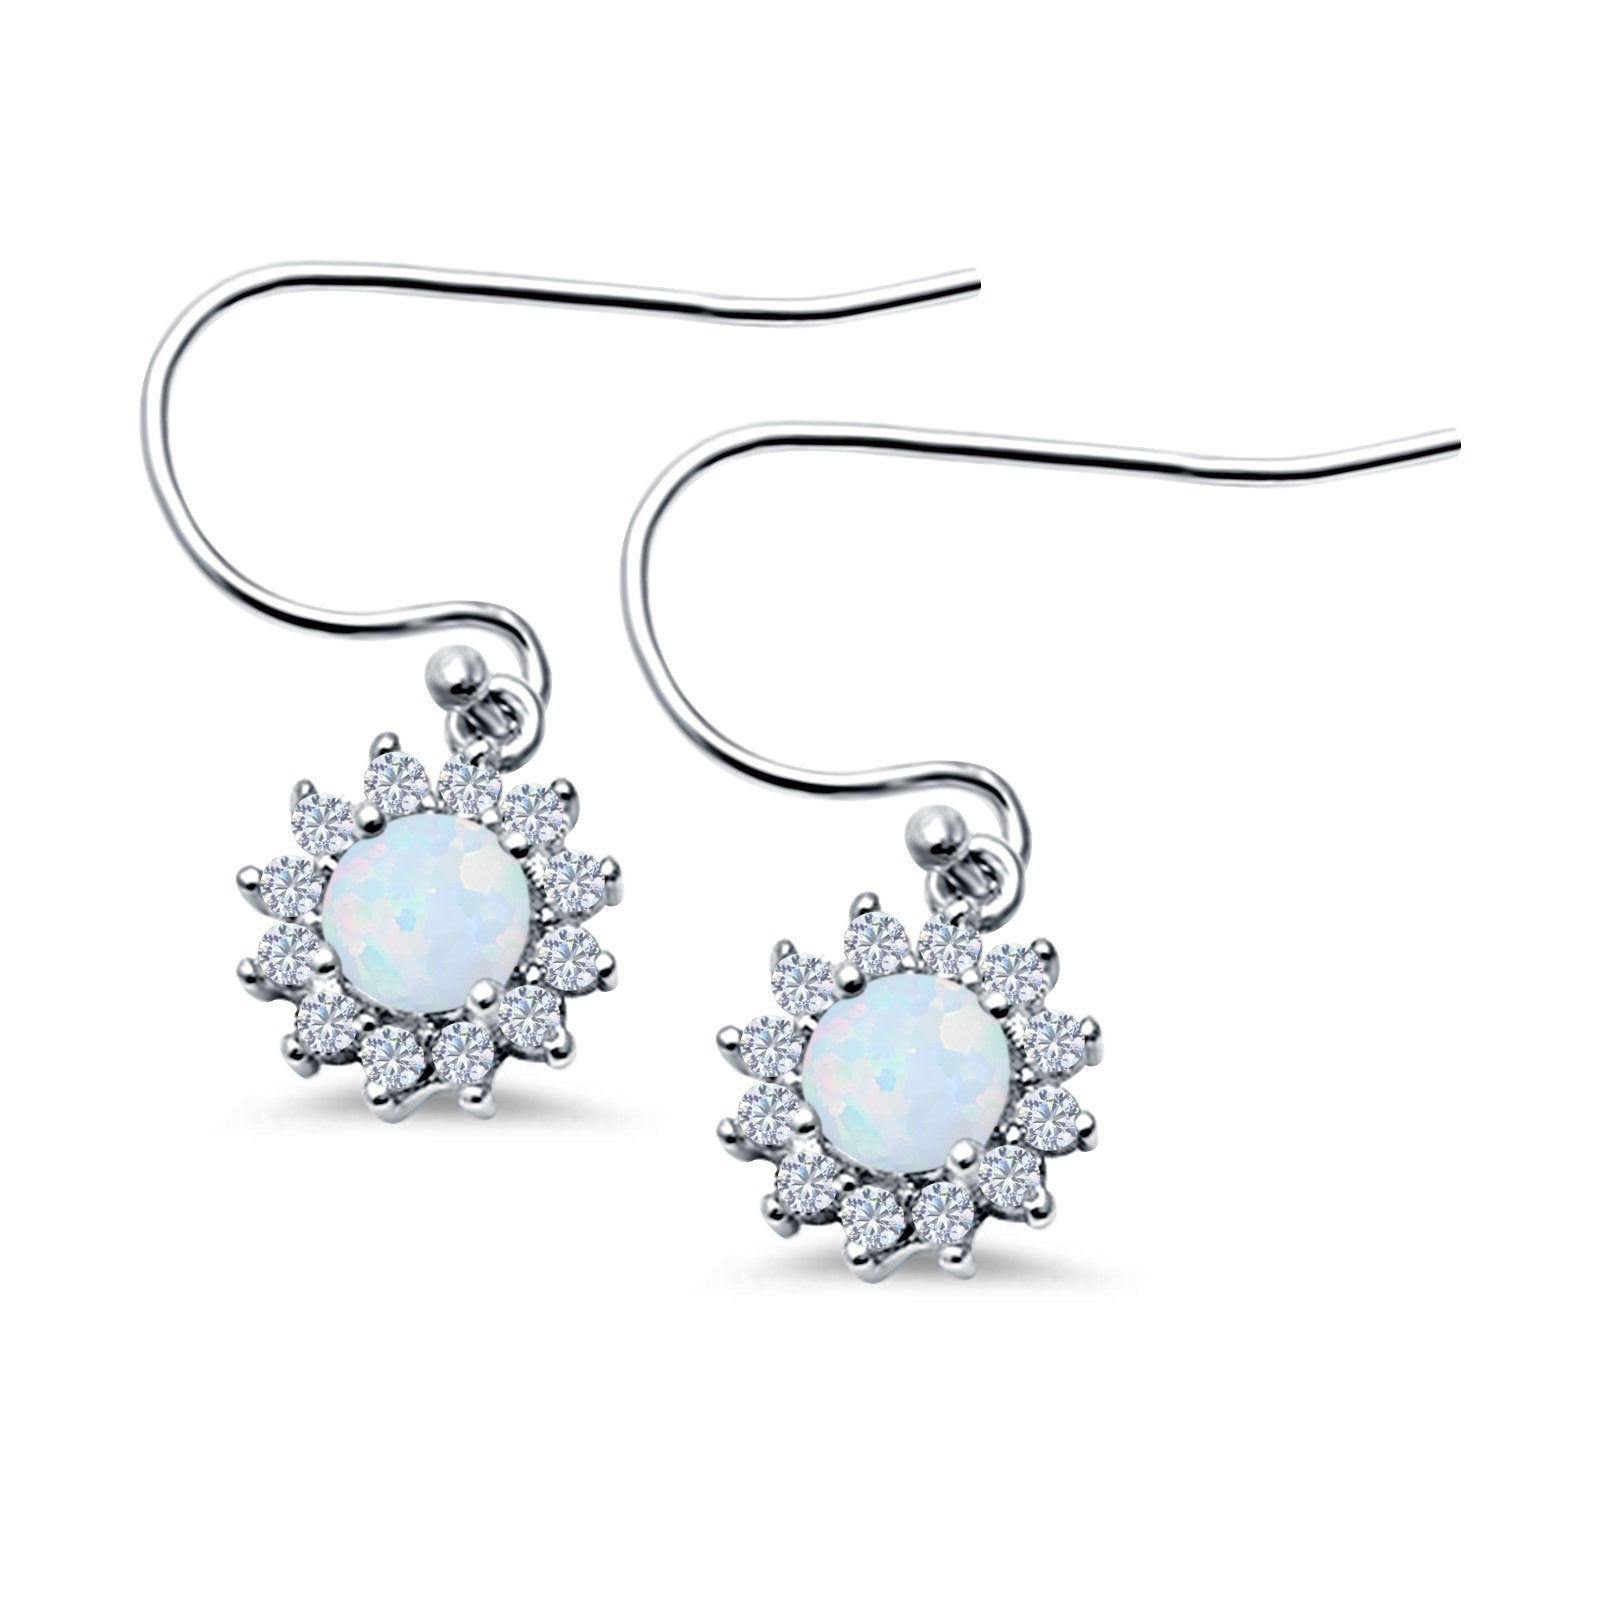 Drop Dangle Round Lab Created White Opal Earrings 925 Sterling Silver